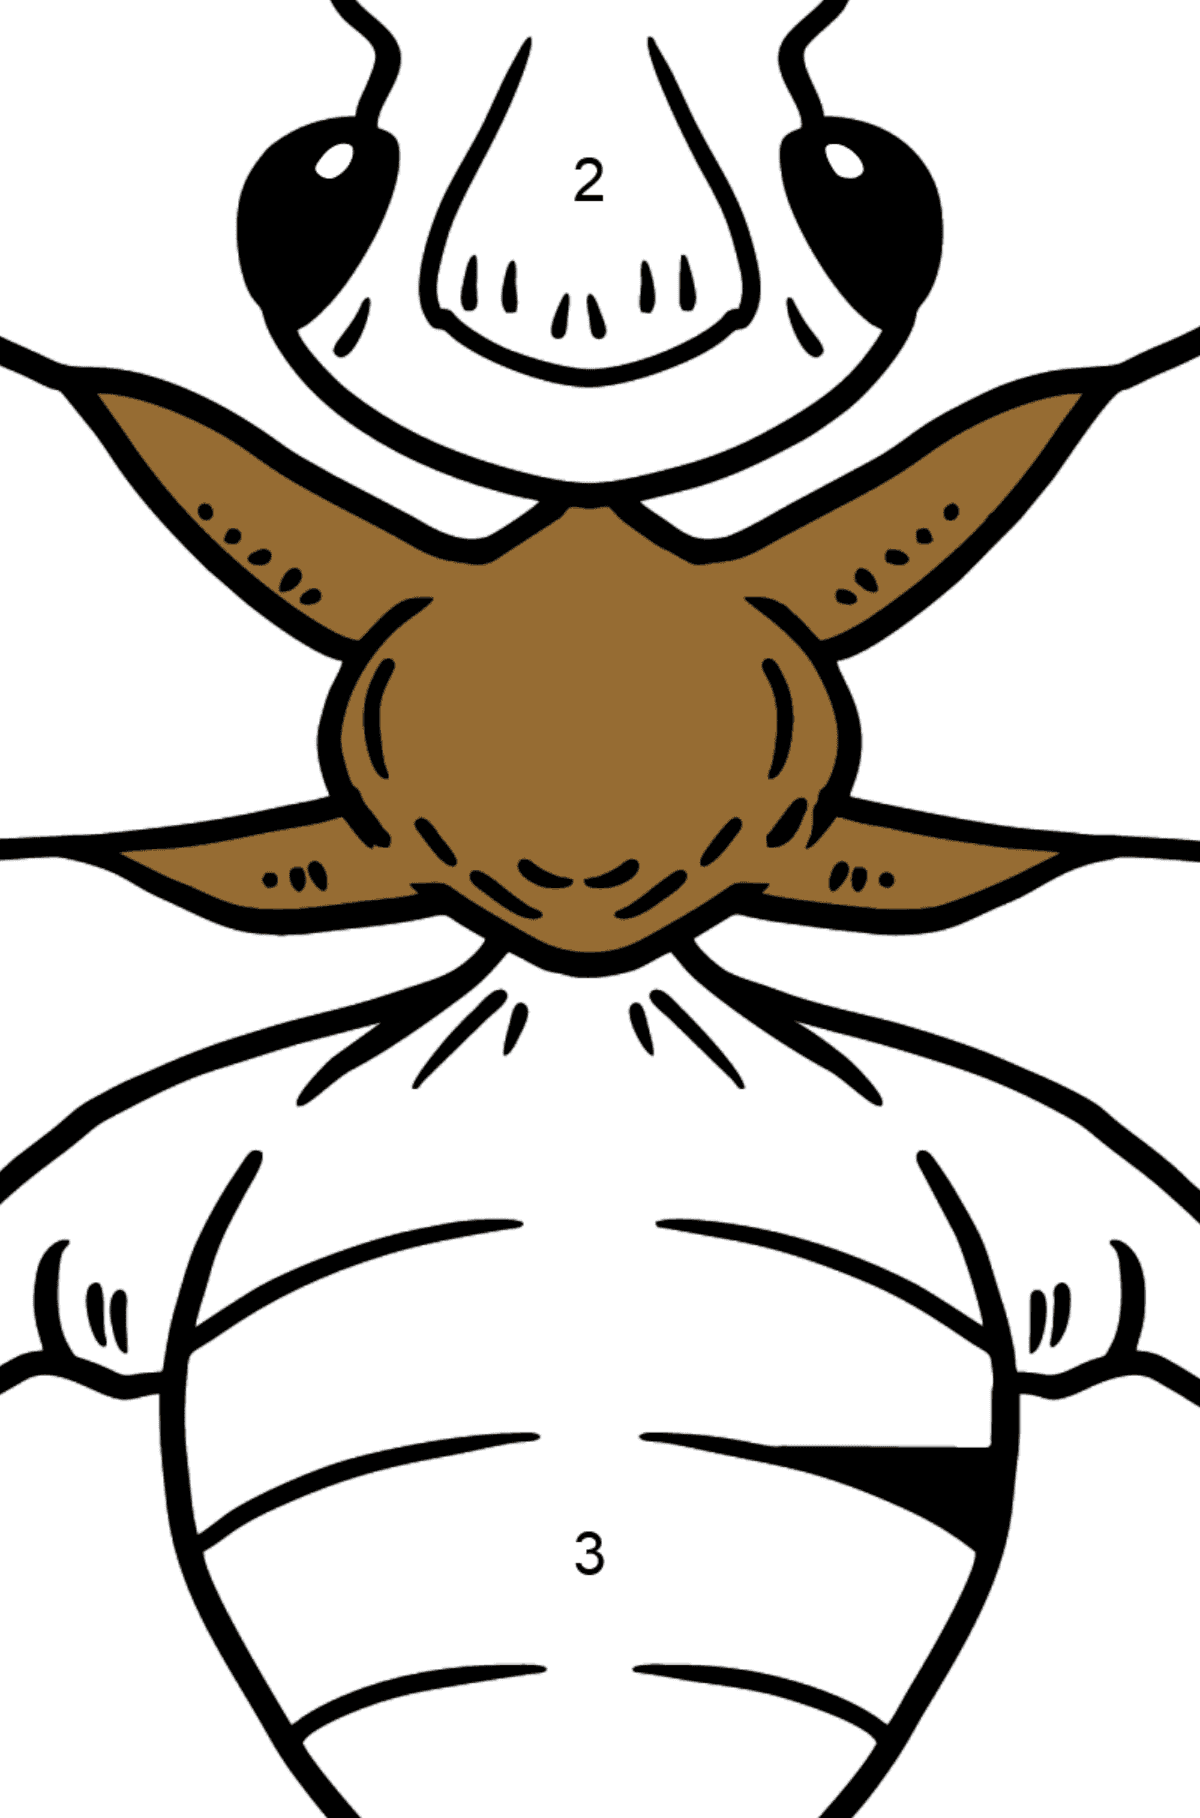 Ant coloring page - Coloring by Numbers for Kids